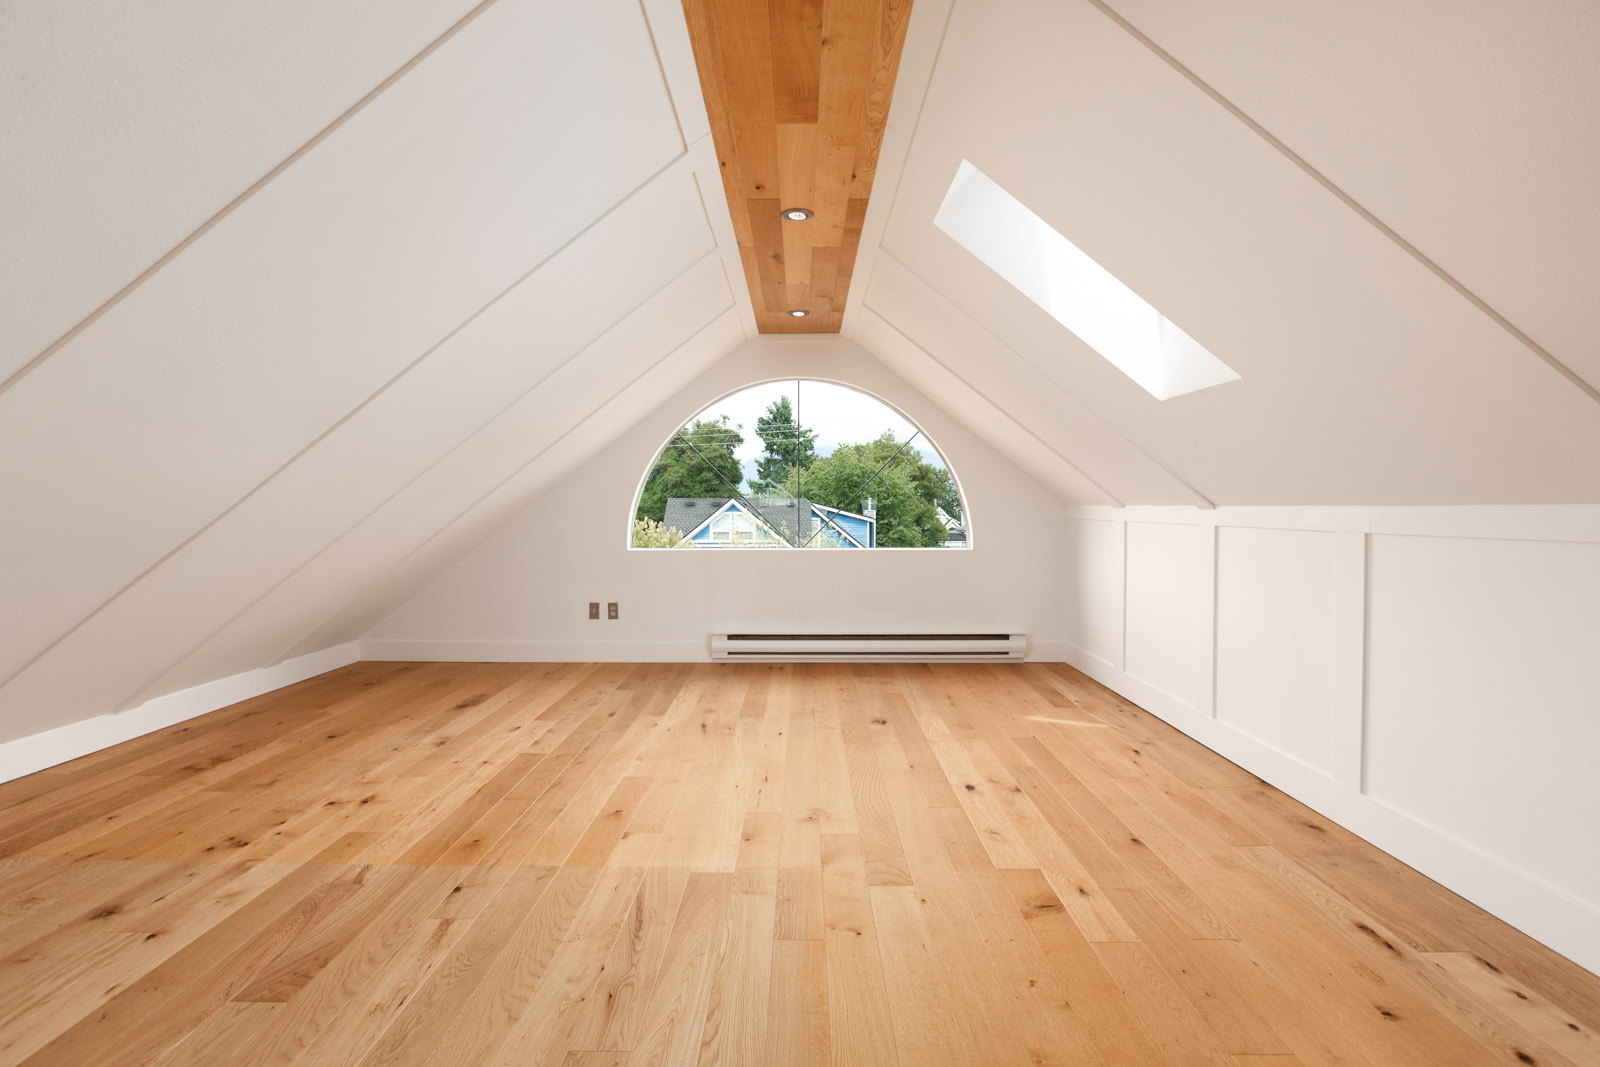 spacious bedroom with A-framesque roof